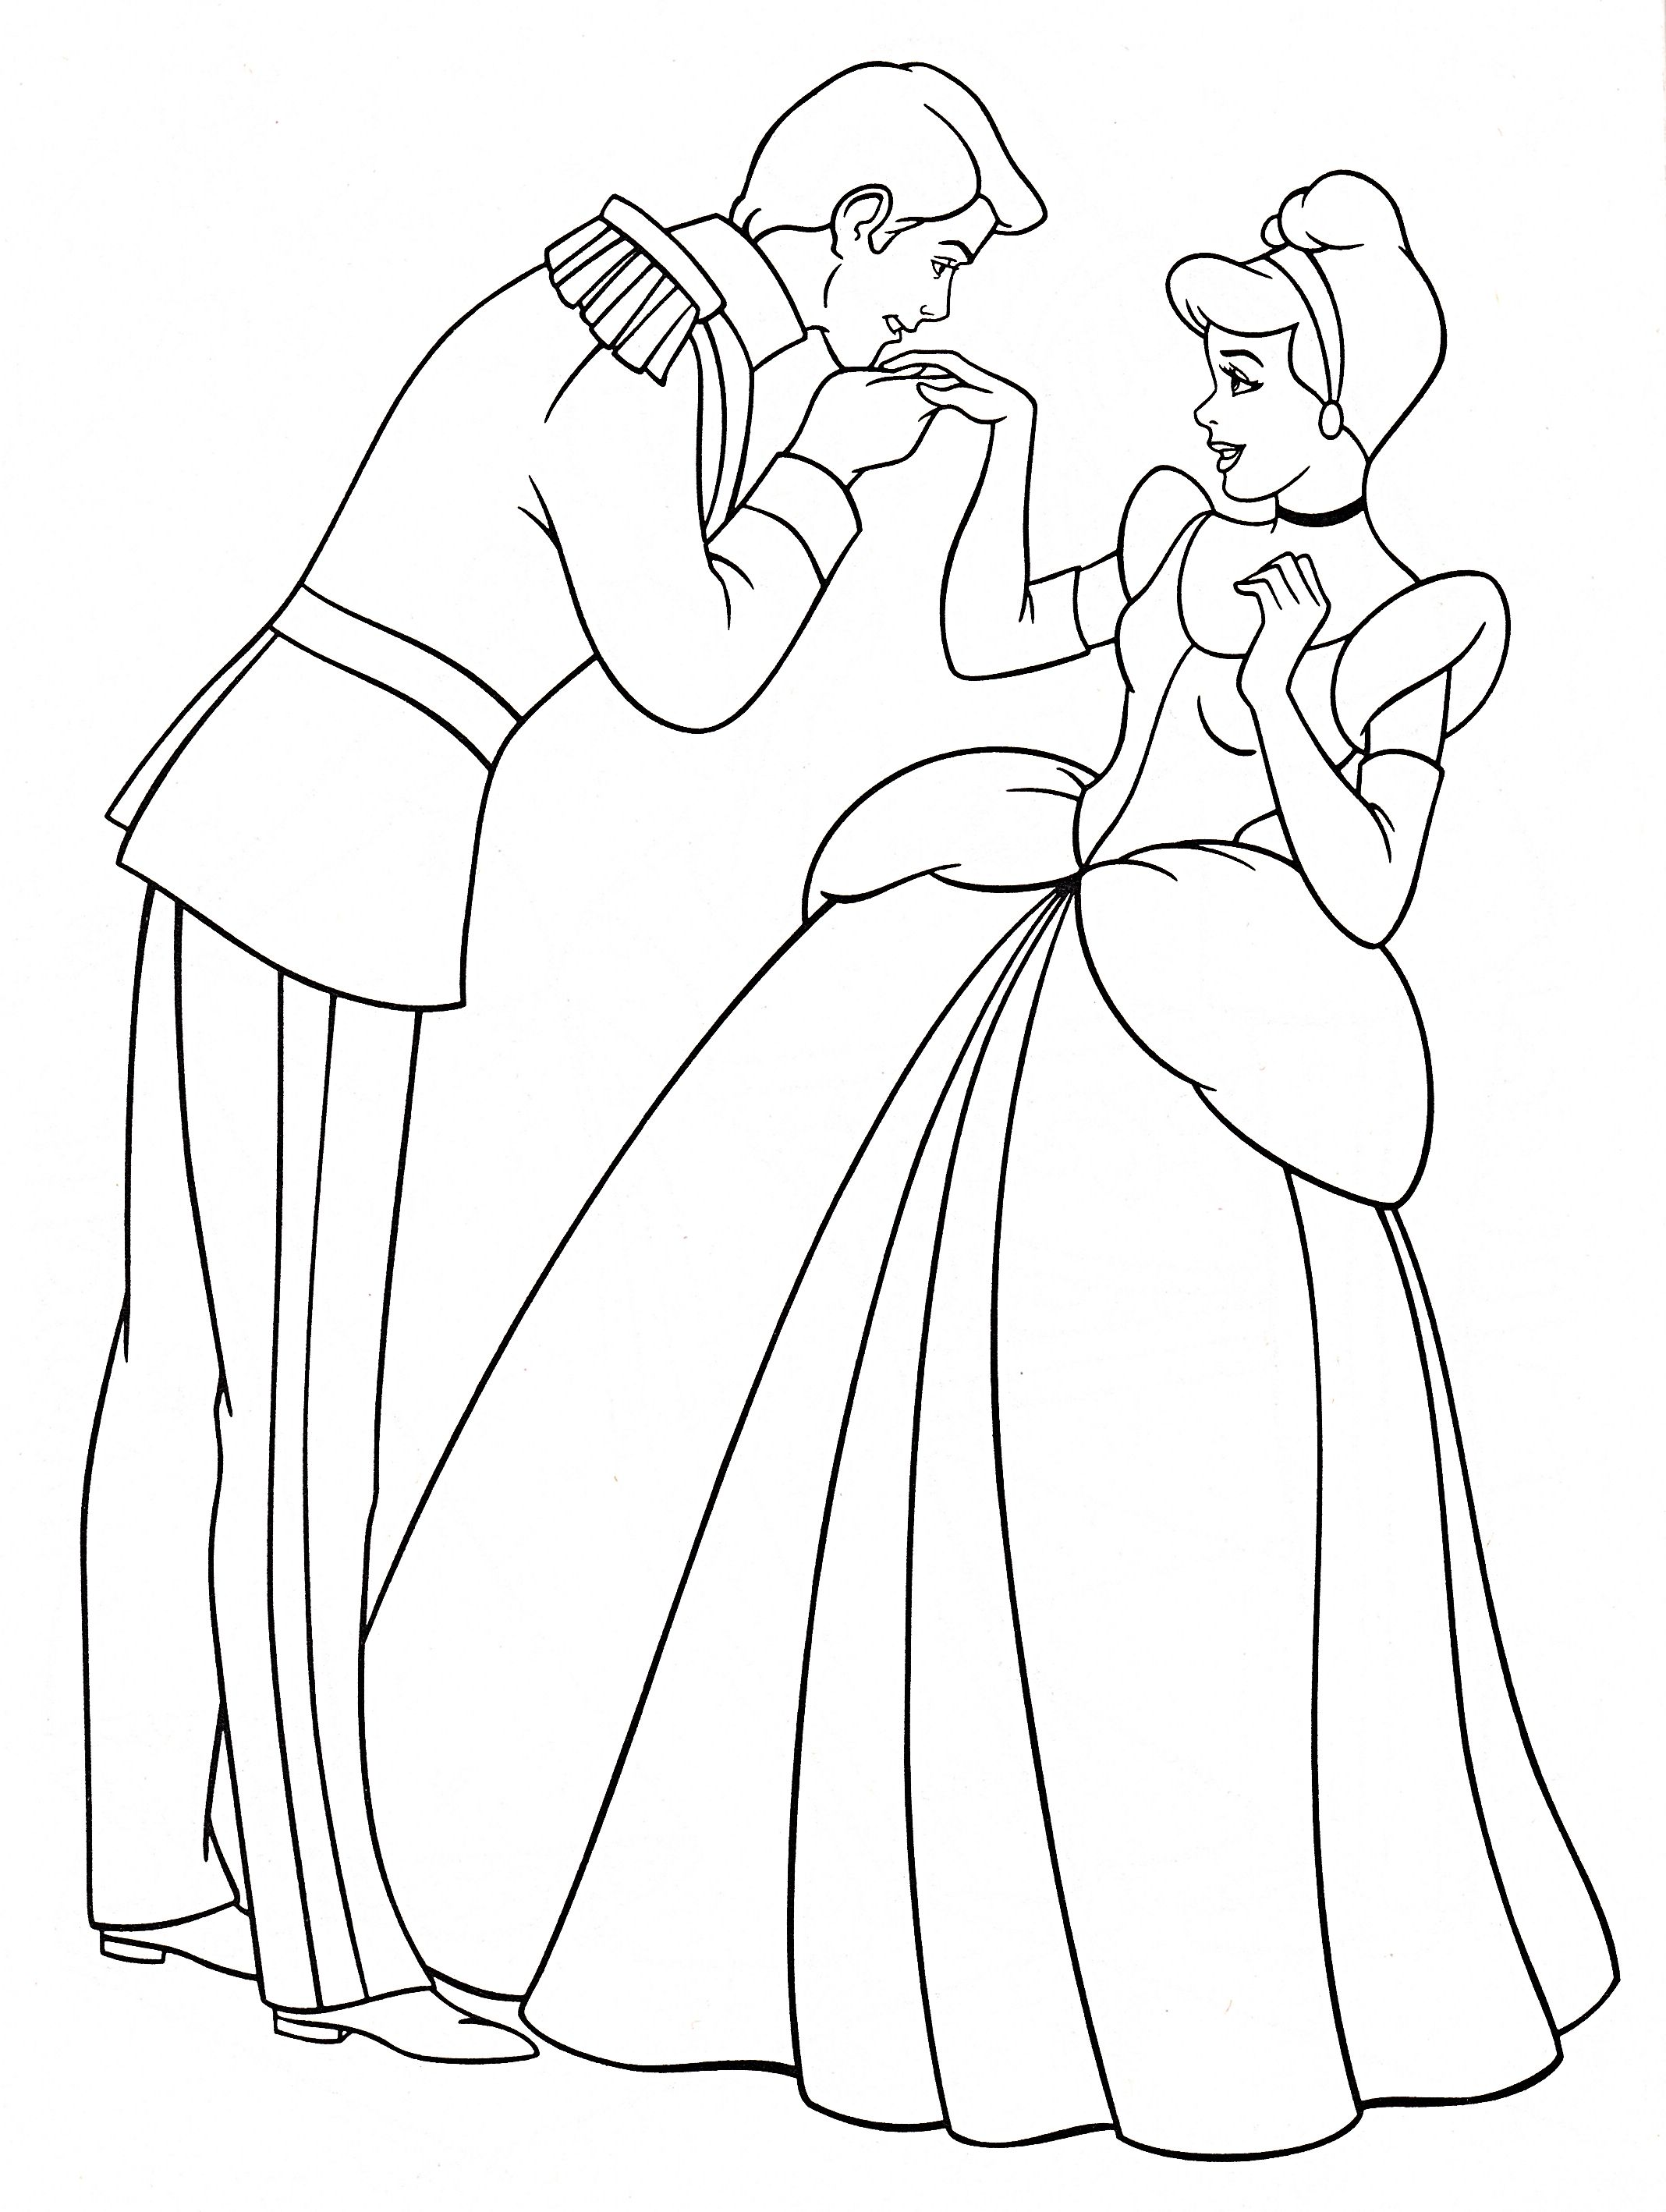 Disney Princess Coloring Pages Pinterest - Walt disney coloring pages prince charming princess cinderella